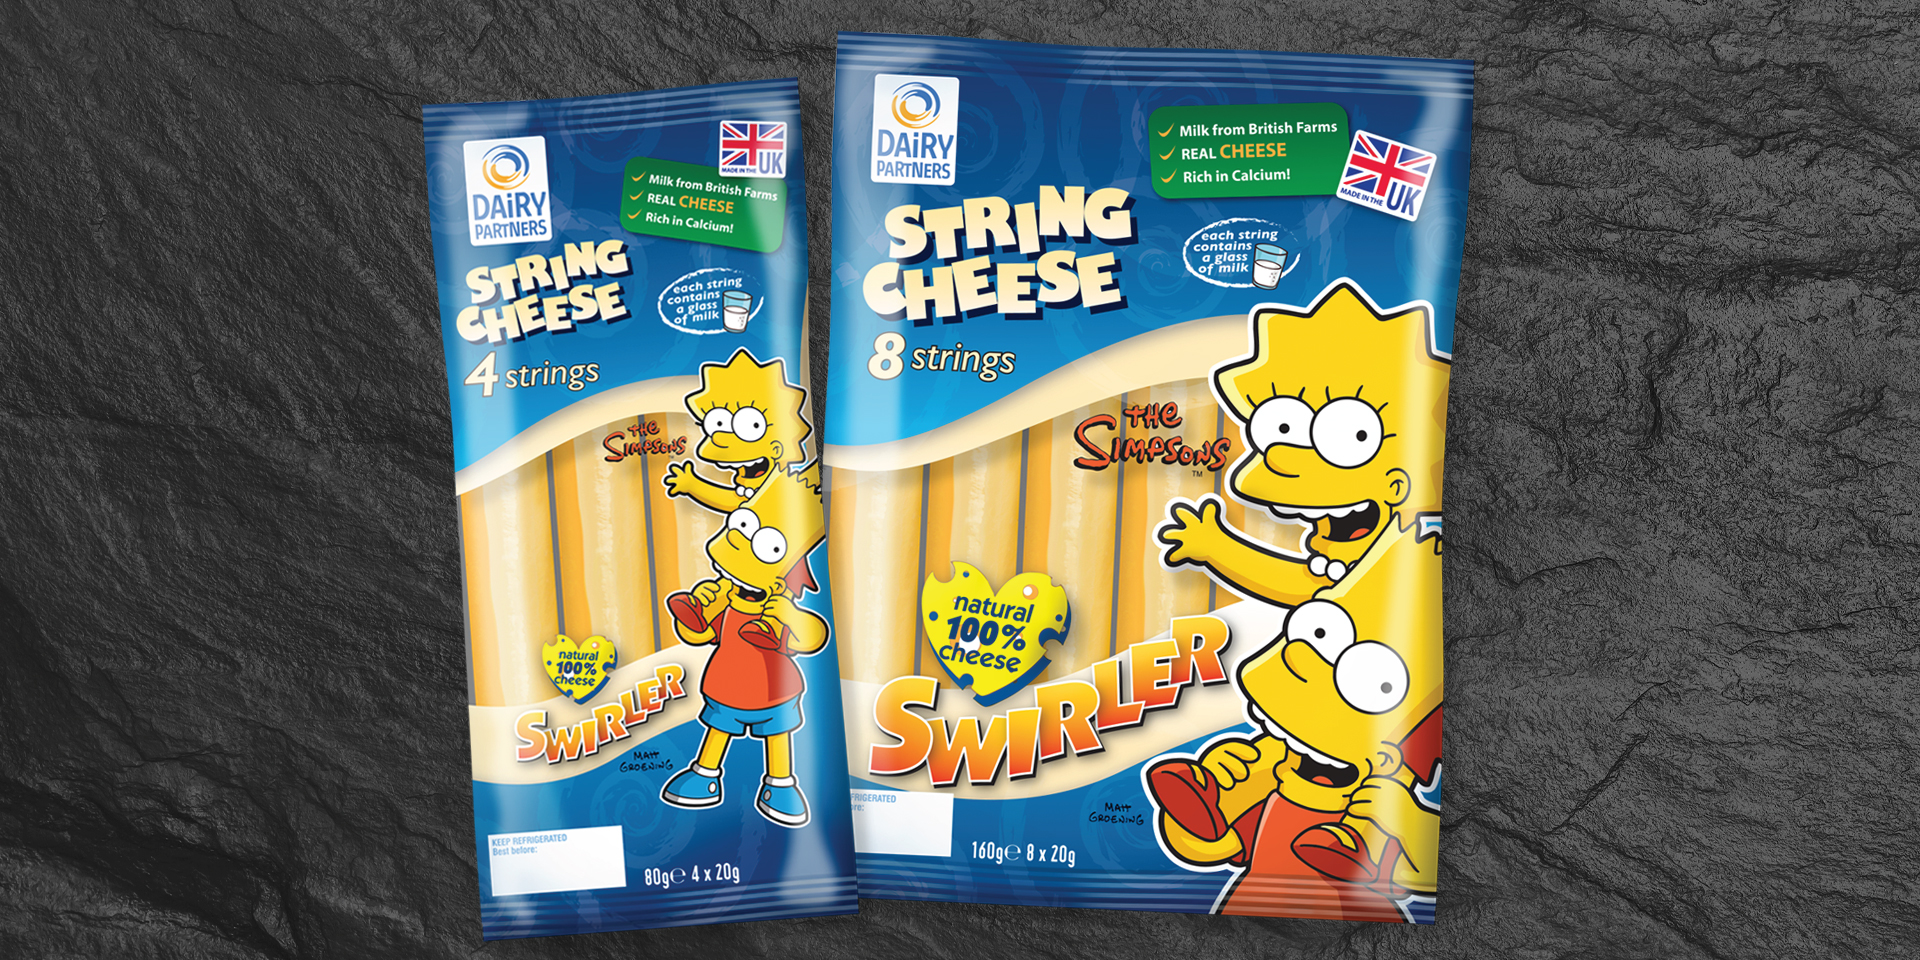 B009-2066-Simpsons-String-Cheese-Casestudy-imagery-Wide-2.jpg